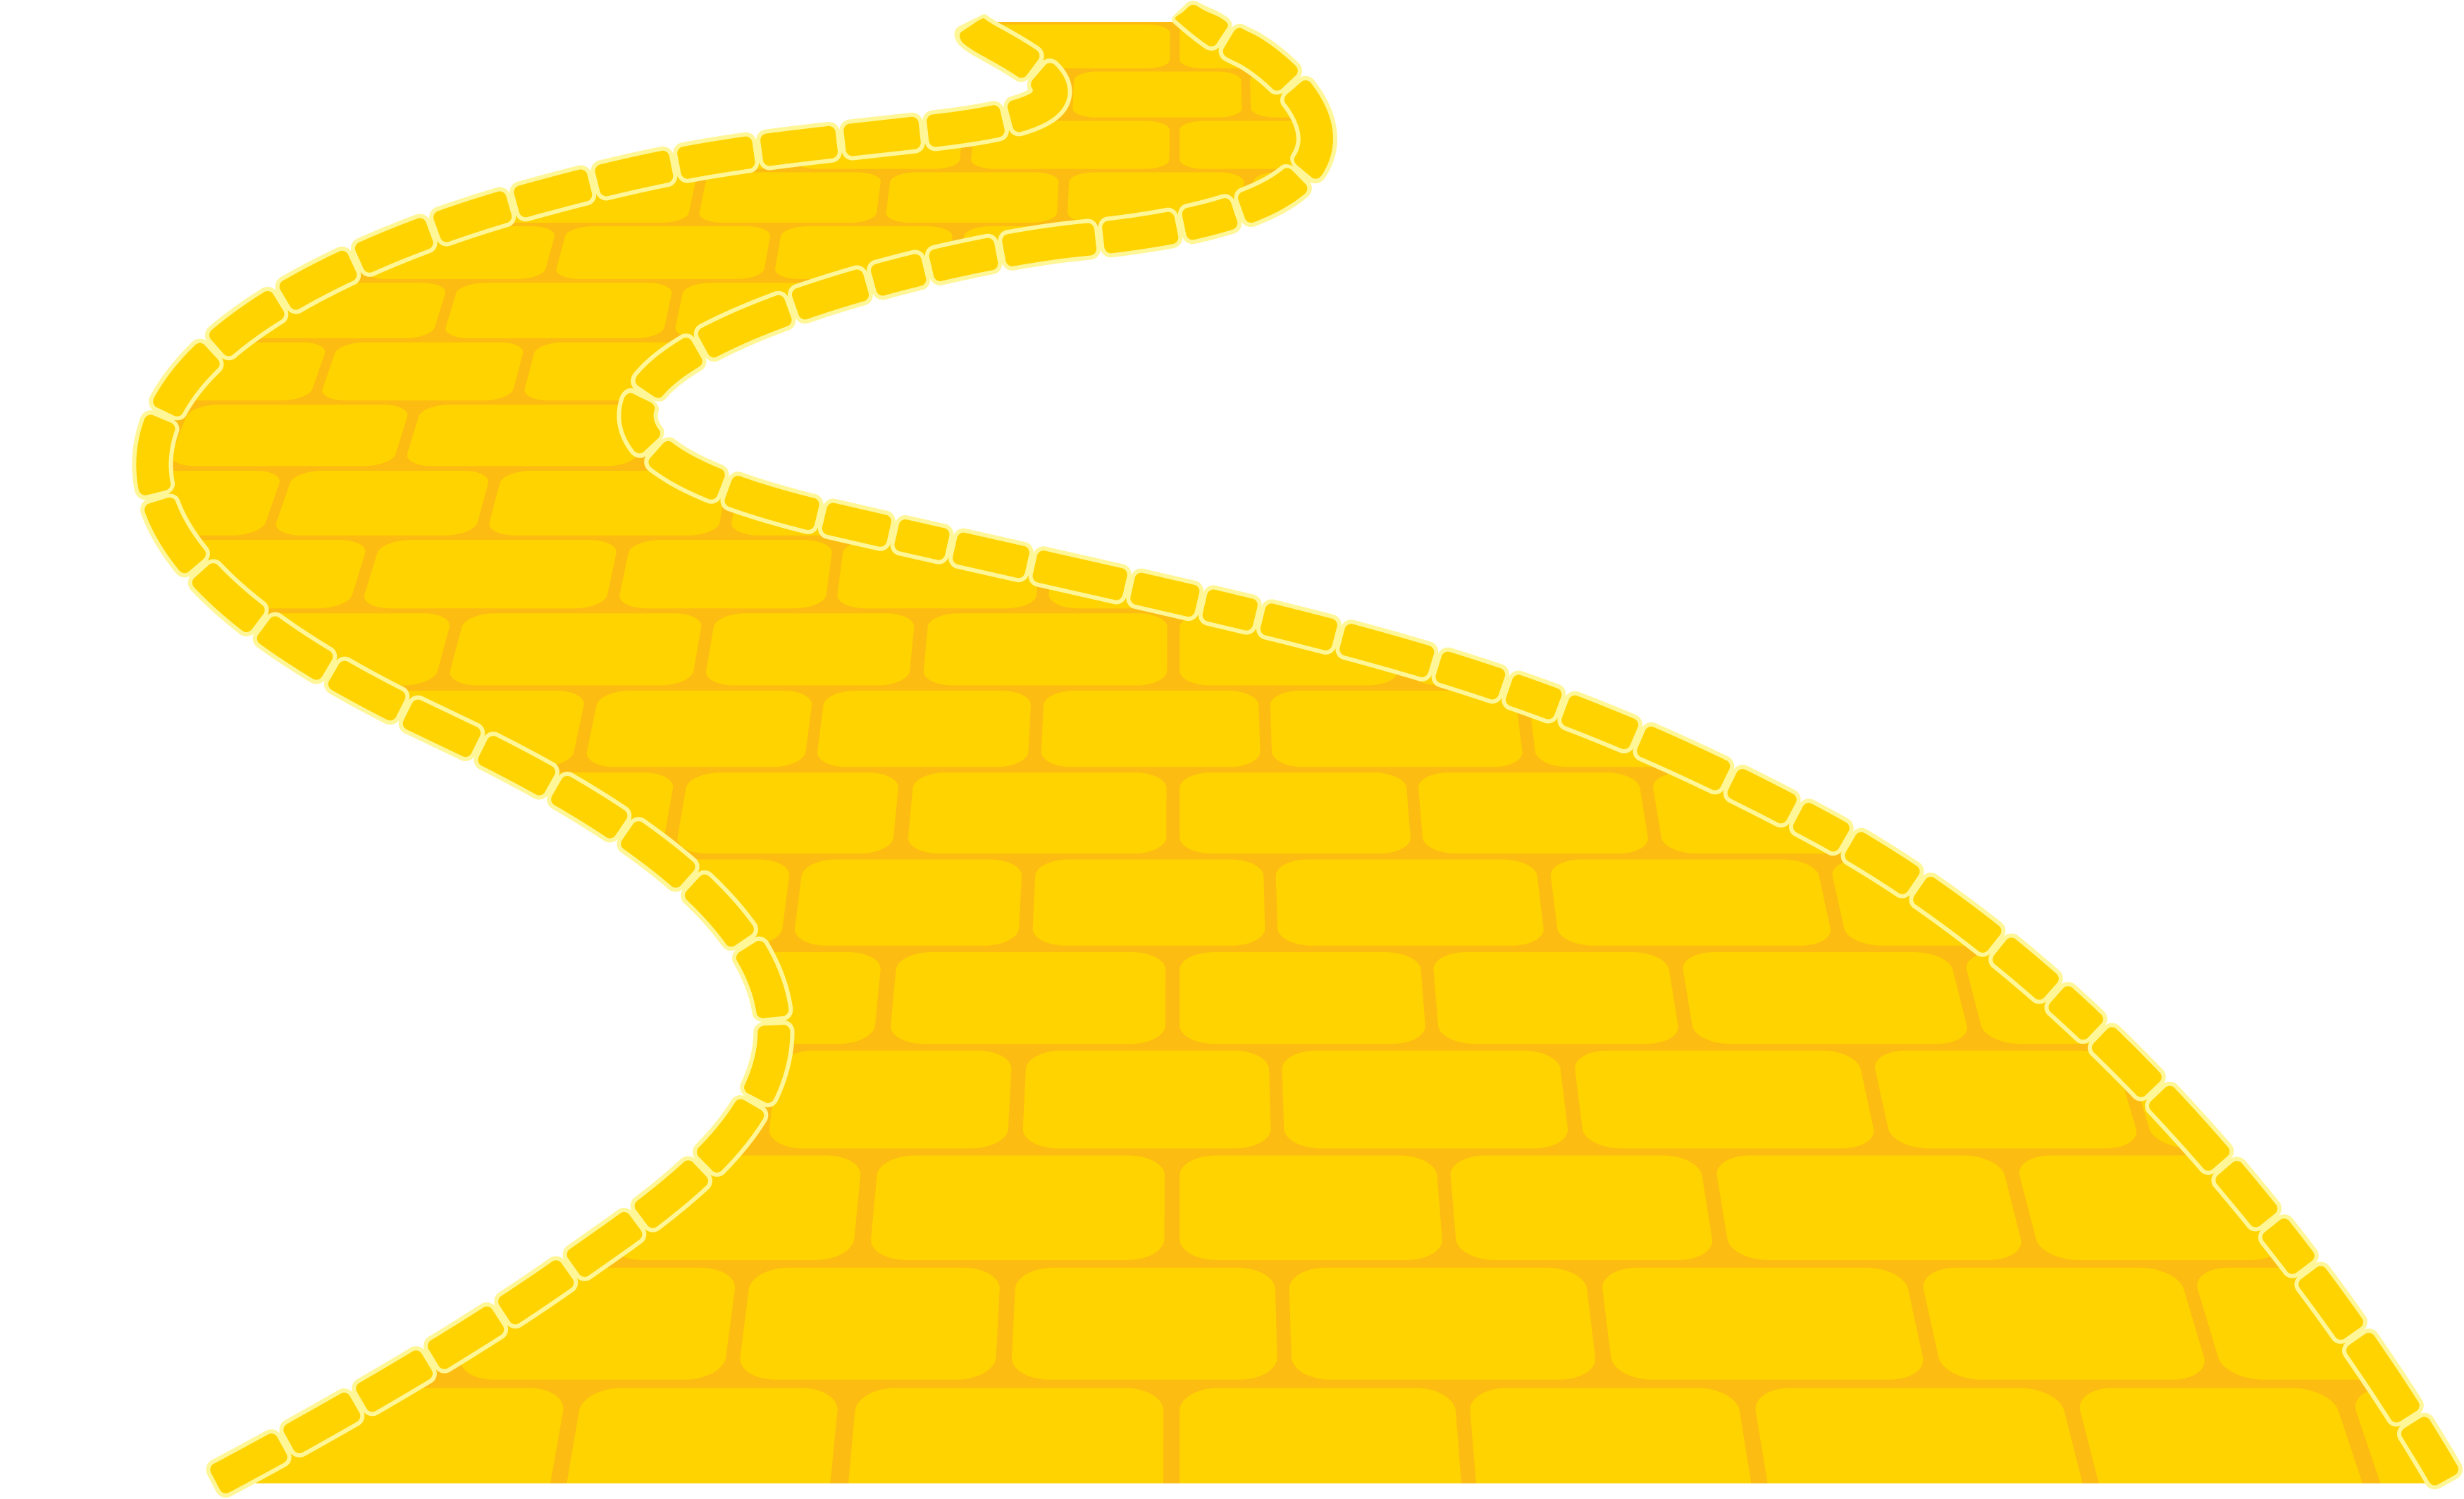 Trail clipart curve road. Yellow brick image group